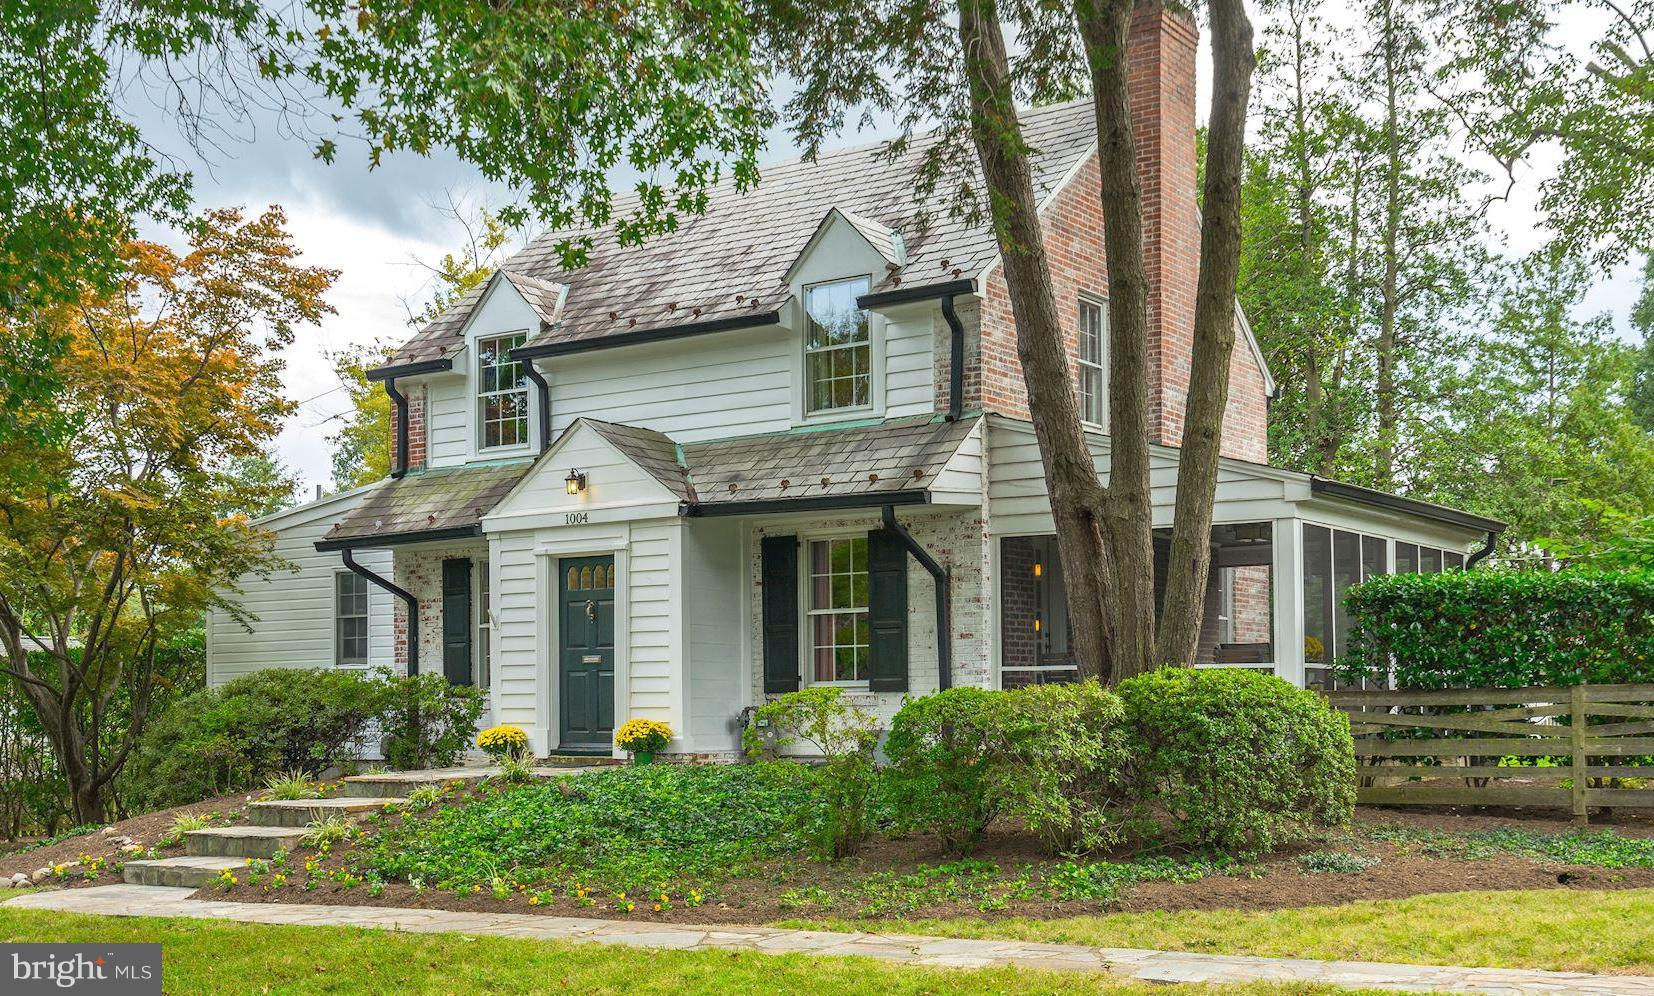 Storybook home on more than 1/3 acre in desirable College Park! Garage, slate roof, brick exterior, mature trees, landscaped w seasonal flowers.  Move-in ready w fresh paint, new appliances, new carpeting and flooring.  Cozy FP, HWF, & Versatile main level BR & BA can also serve as a family room.  LL w workshop, rec room, and lot of storage. Quick drive to DC, Old Town, Beltway.  Open 10/14 1-4:00